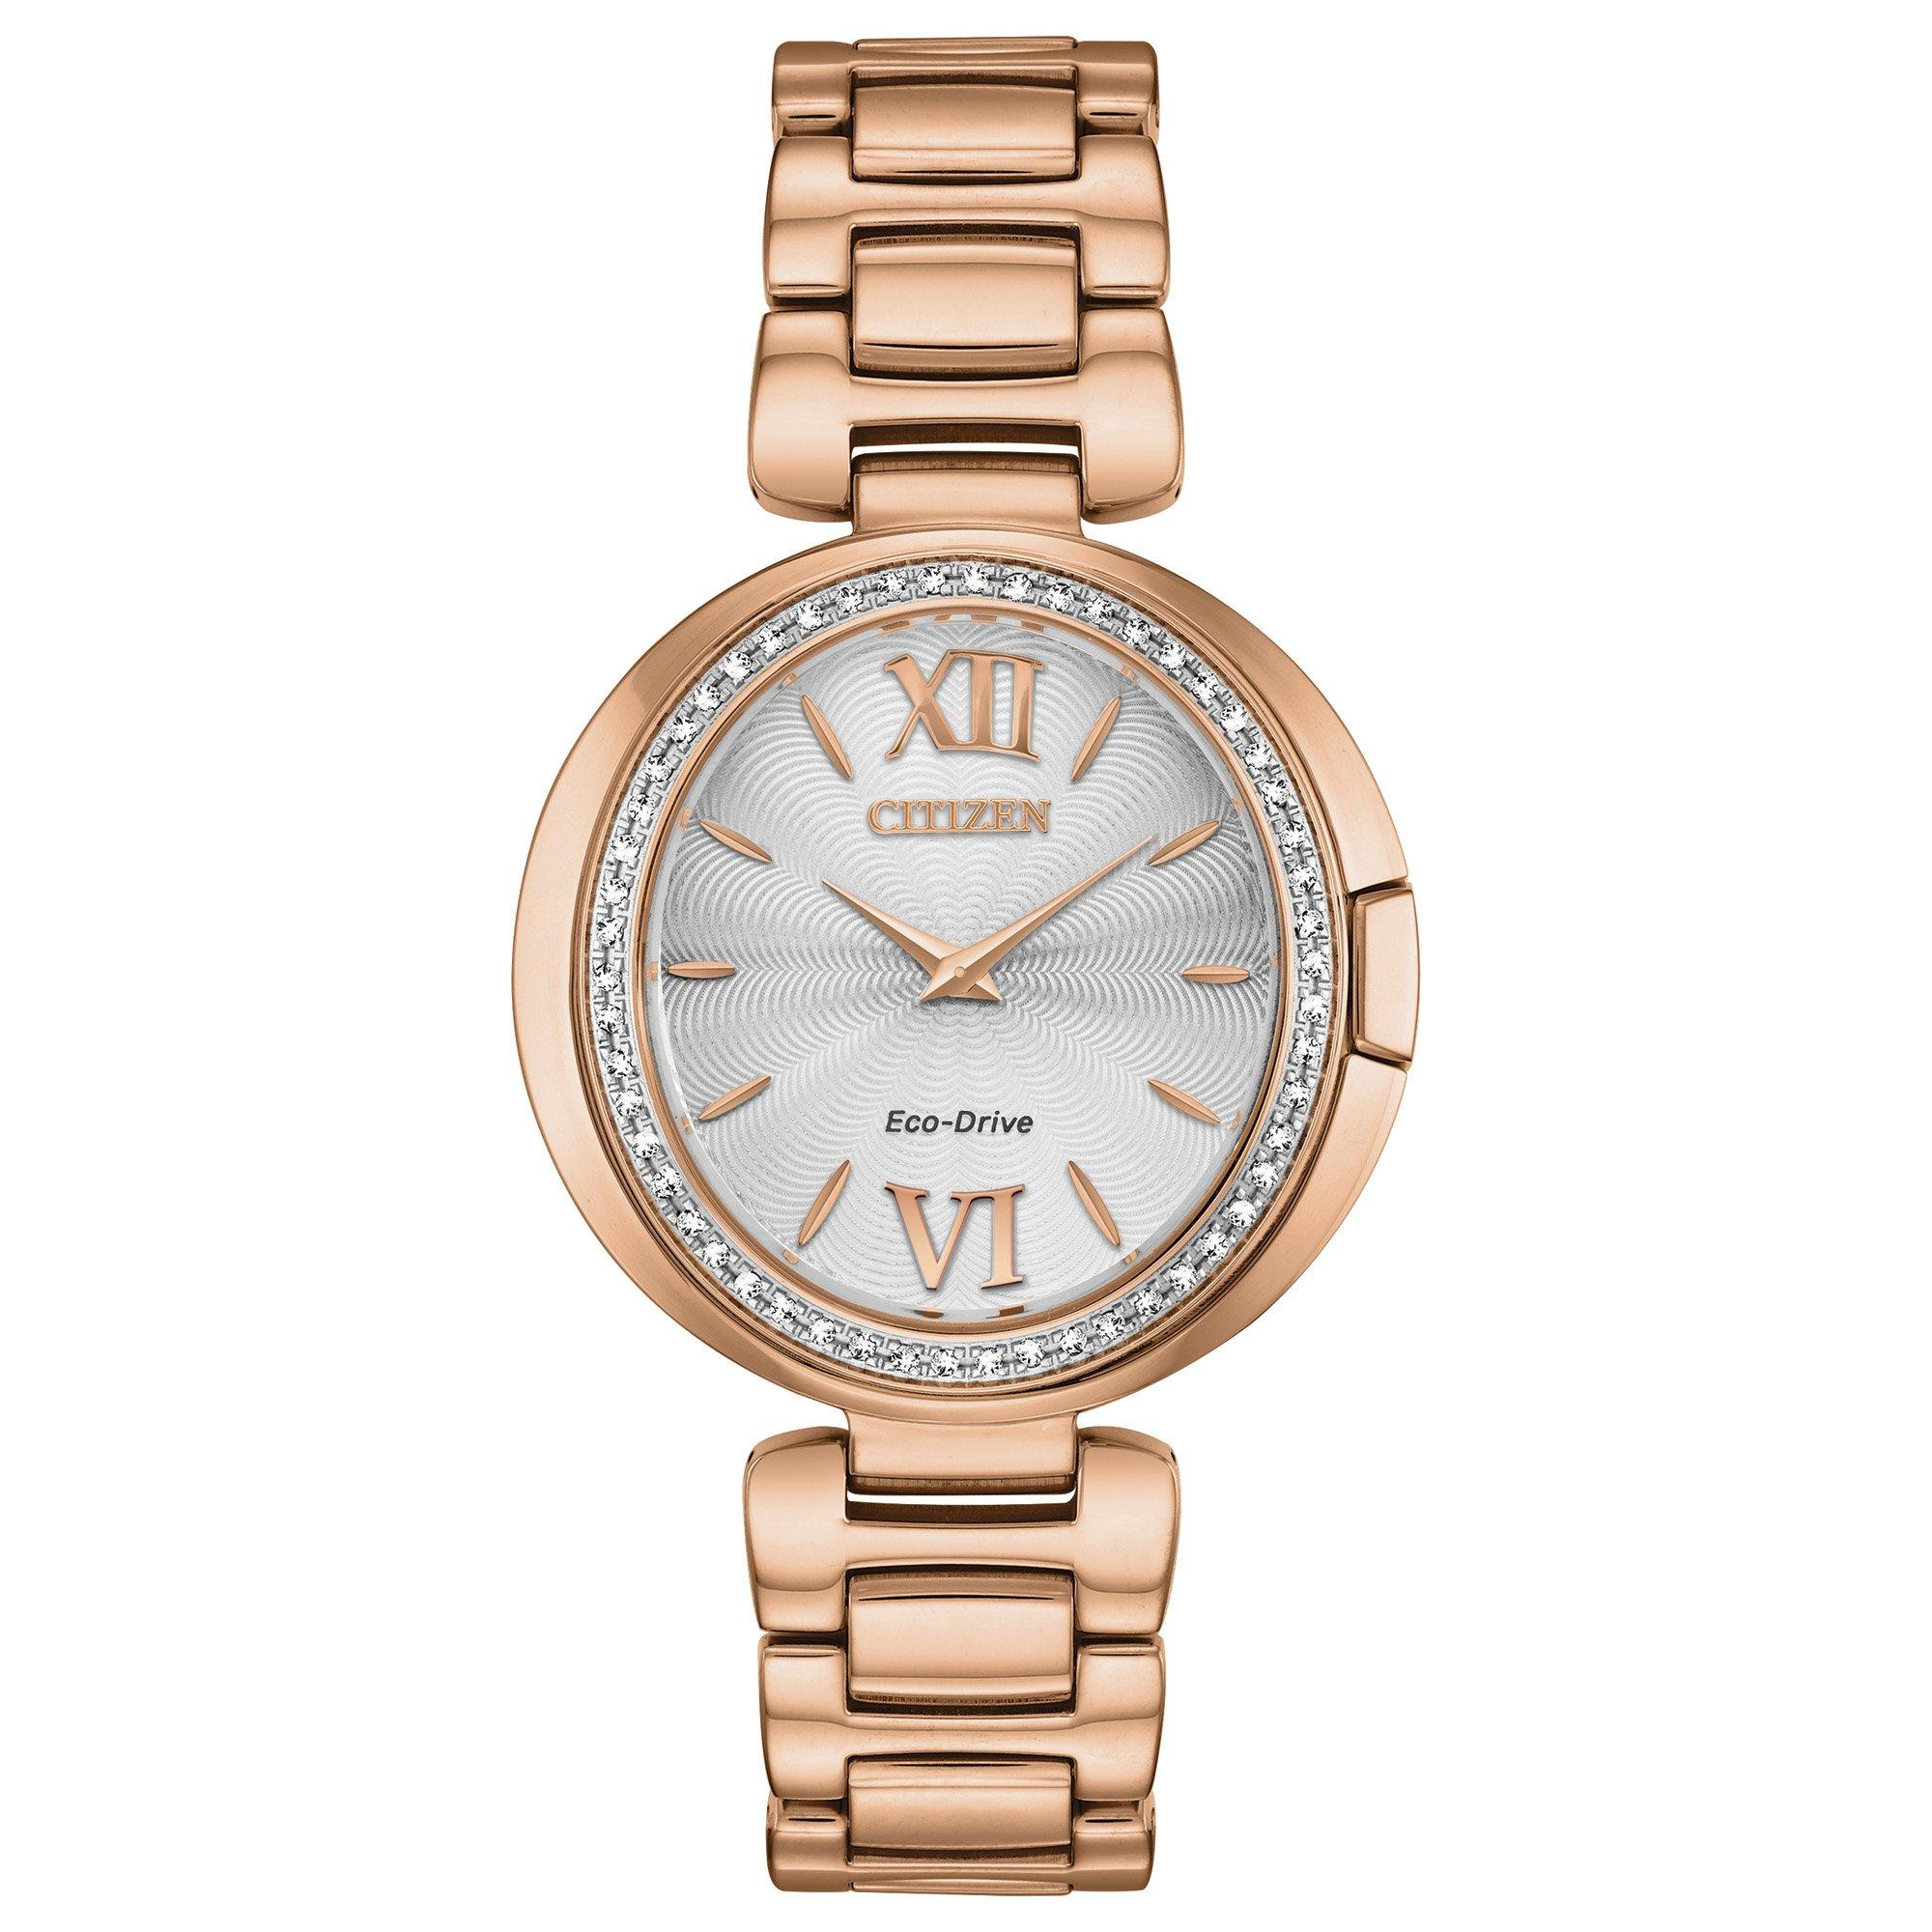 Citizen Capella Diamond Eco-Drive Rose Gold Plated Ladies Watch